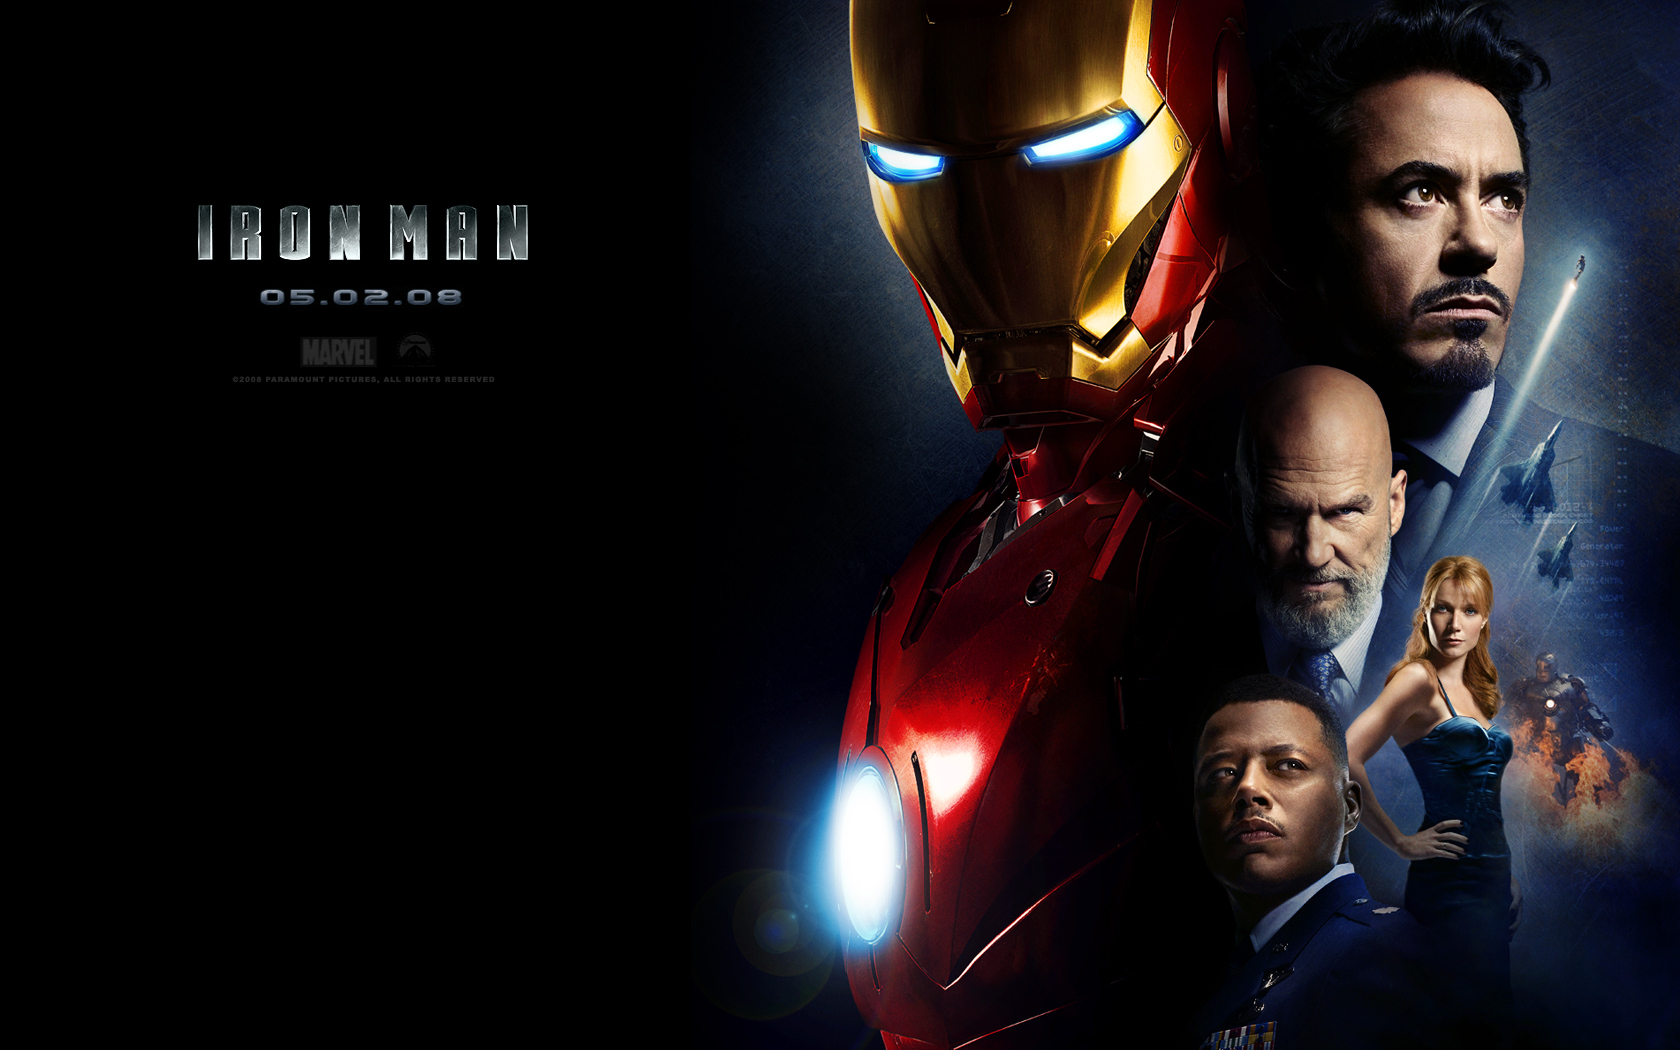 iron man images new wallpaper hd wallpaper and background photos 948765